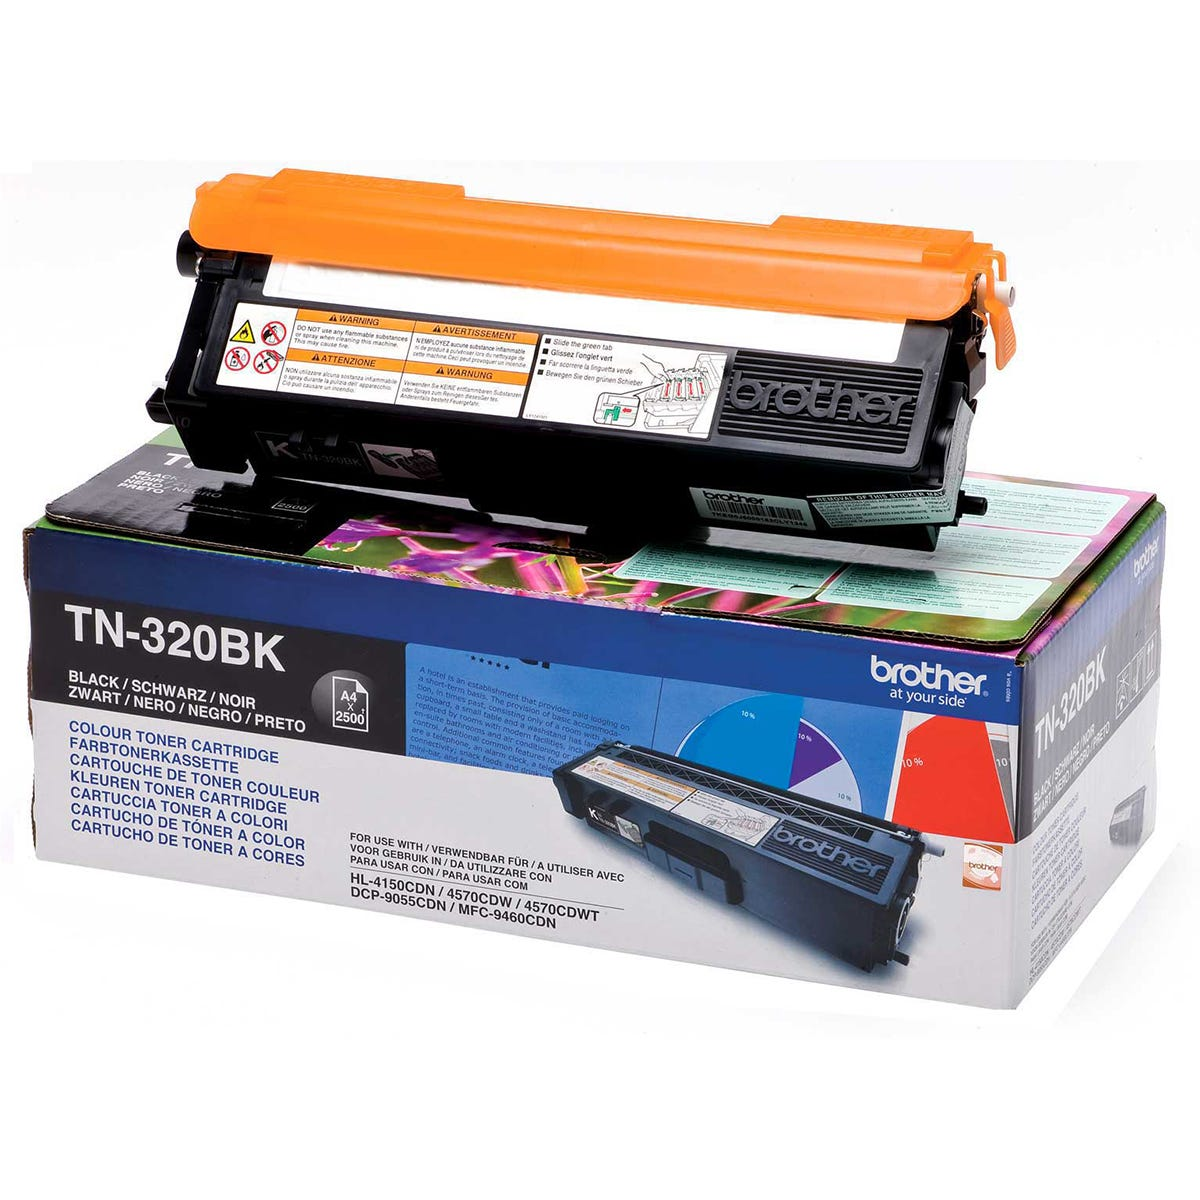 Image of Brother TN 320 Printer Ink Toner Cartridge